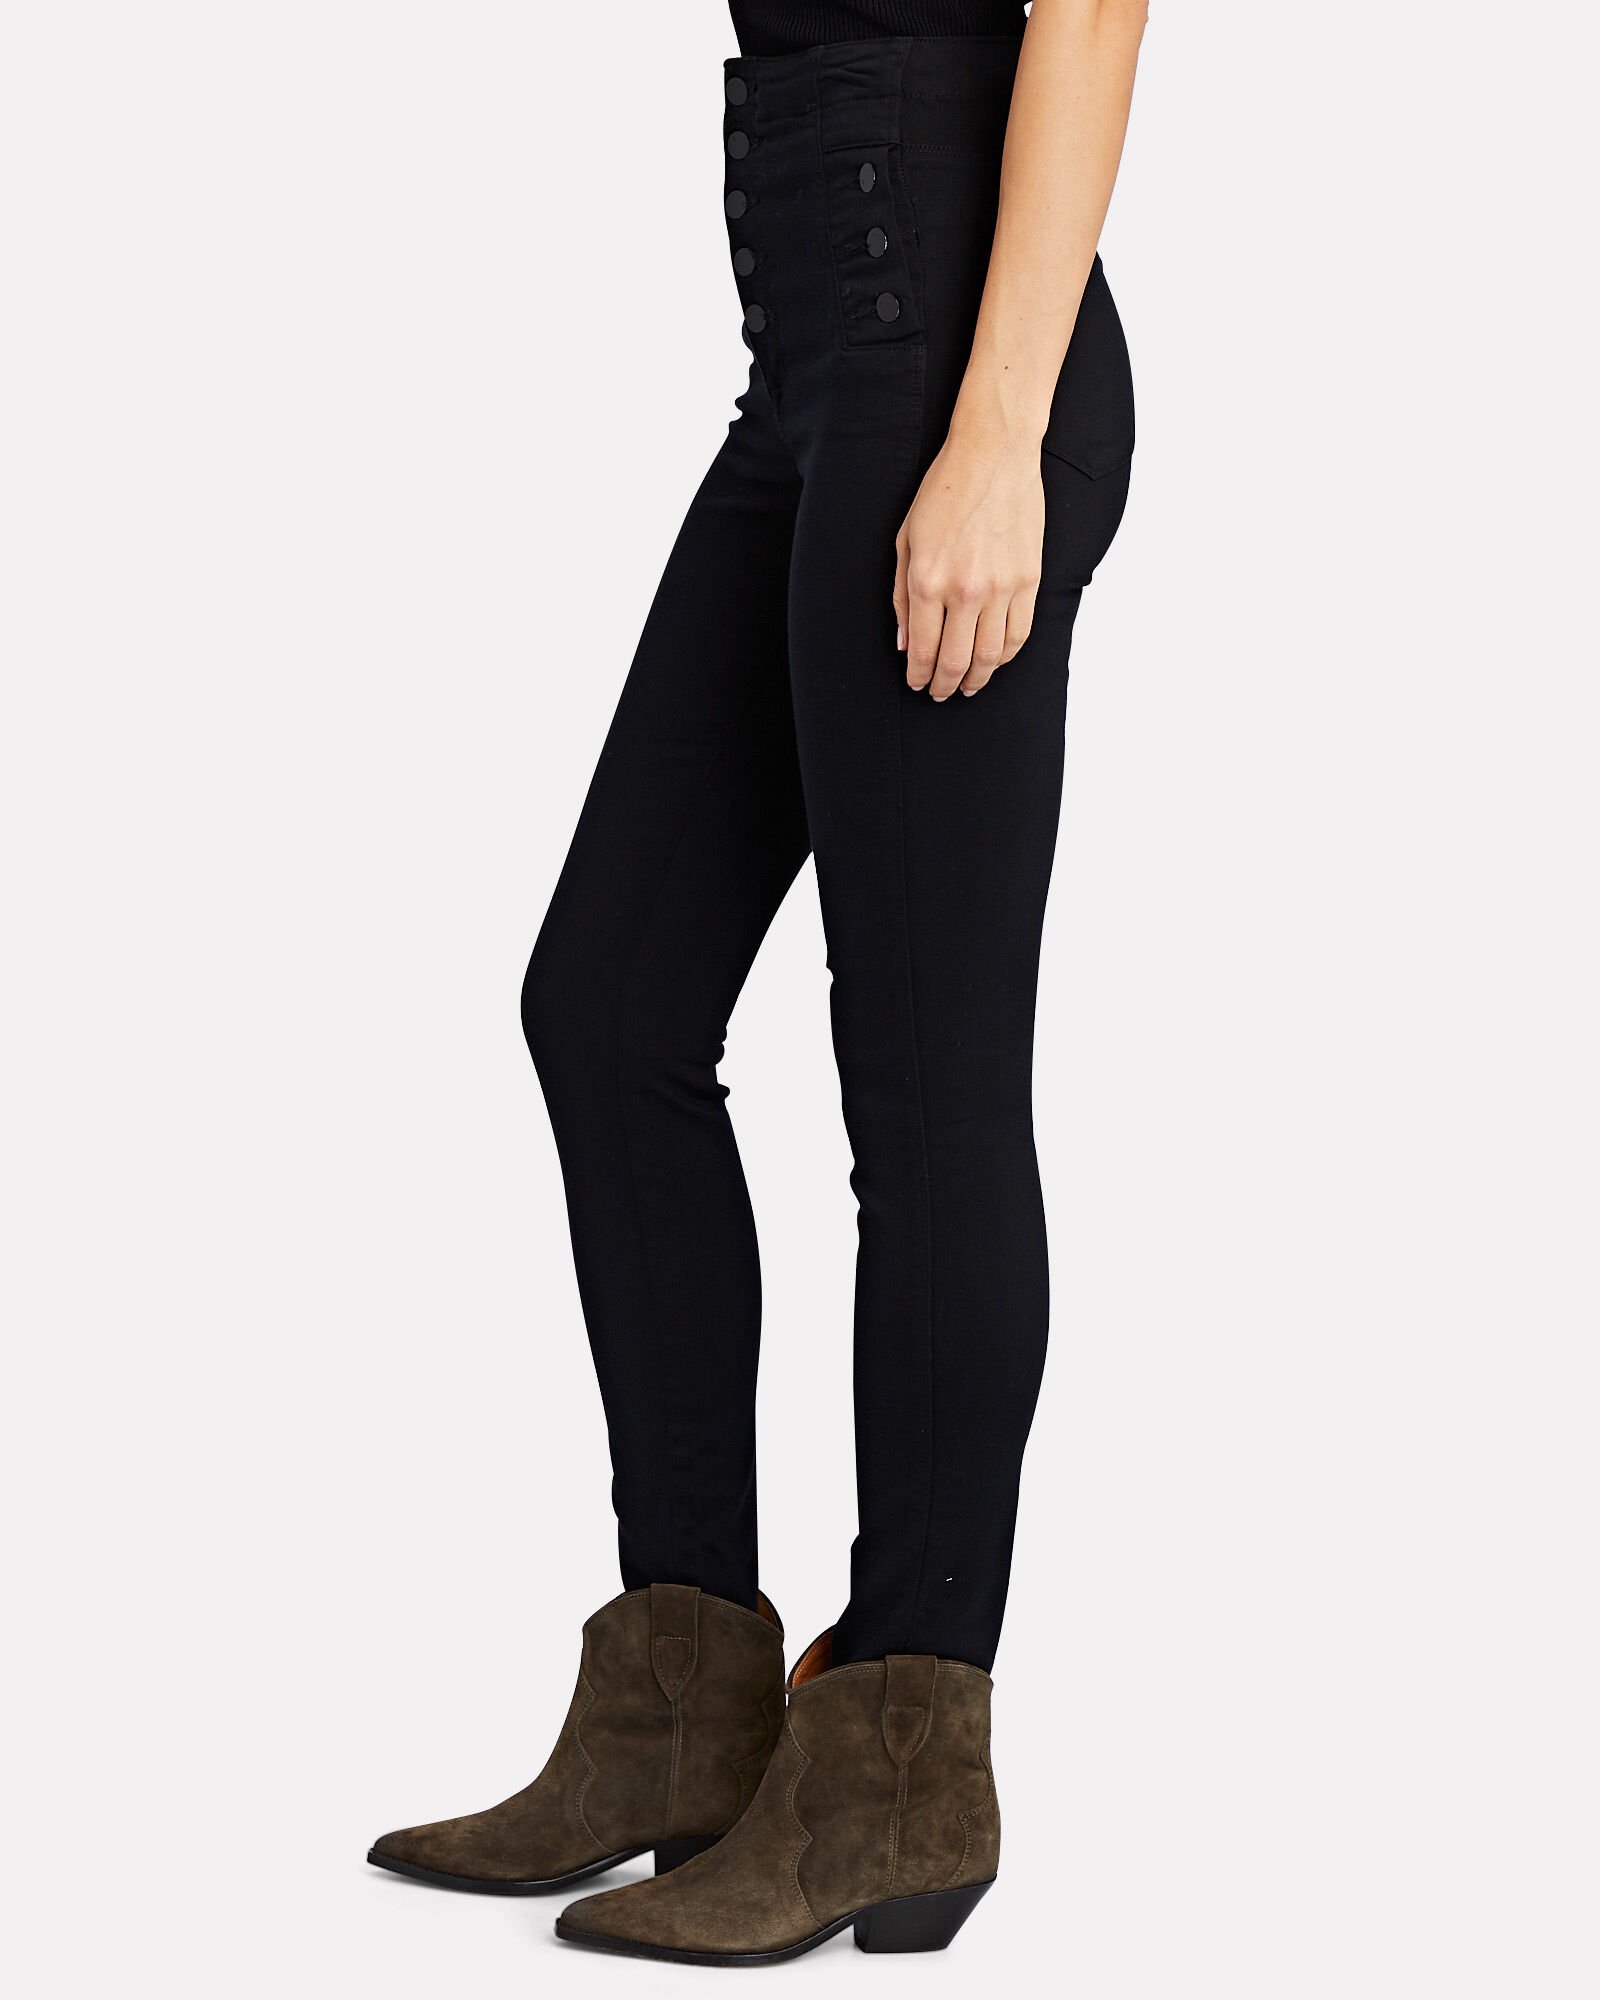 Natasha Sky High Skinny Jeans, BLACK, hi-res